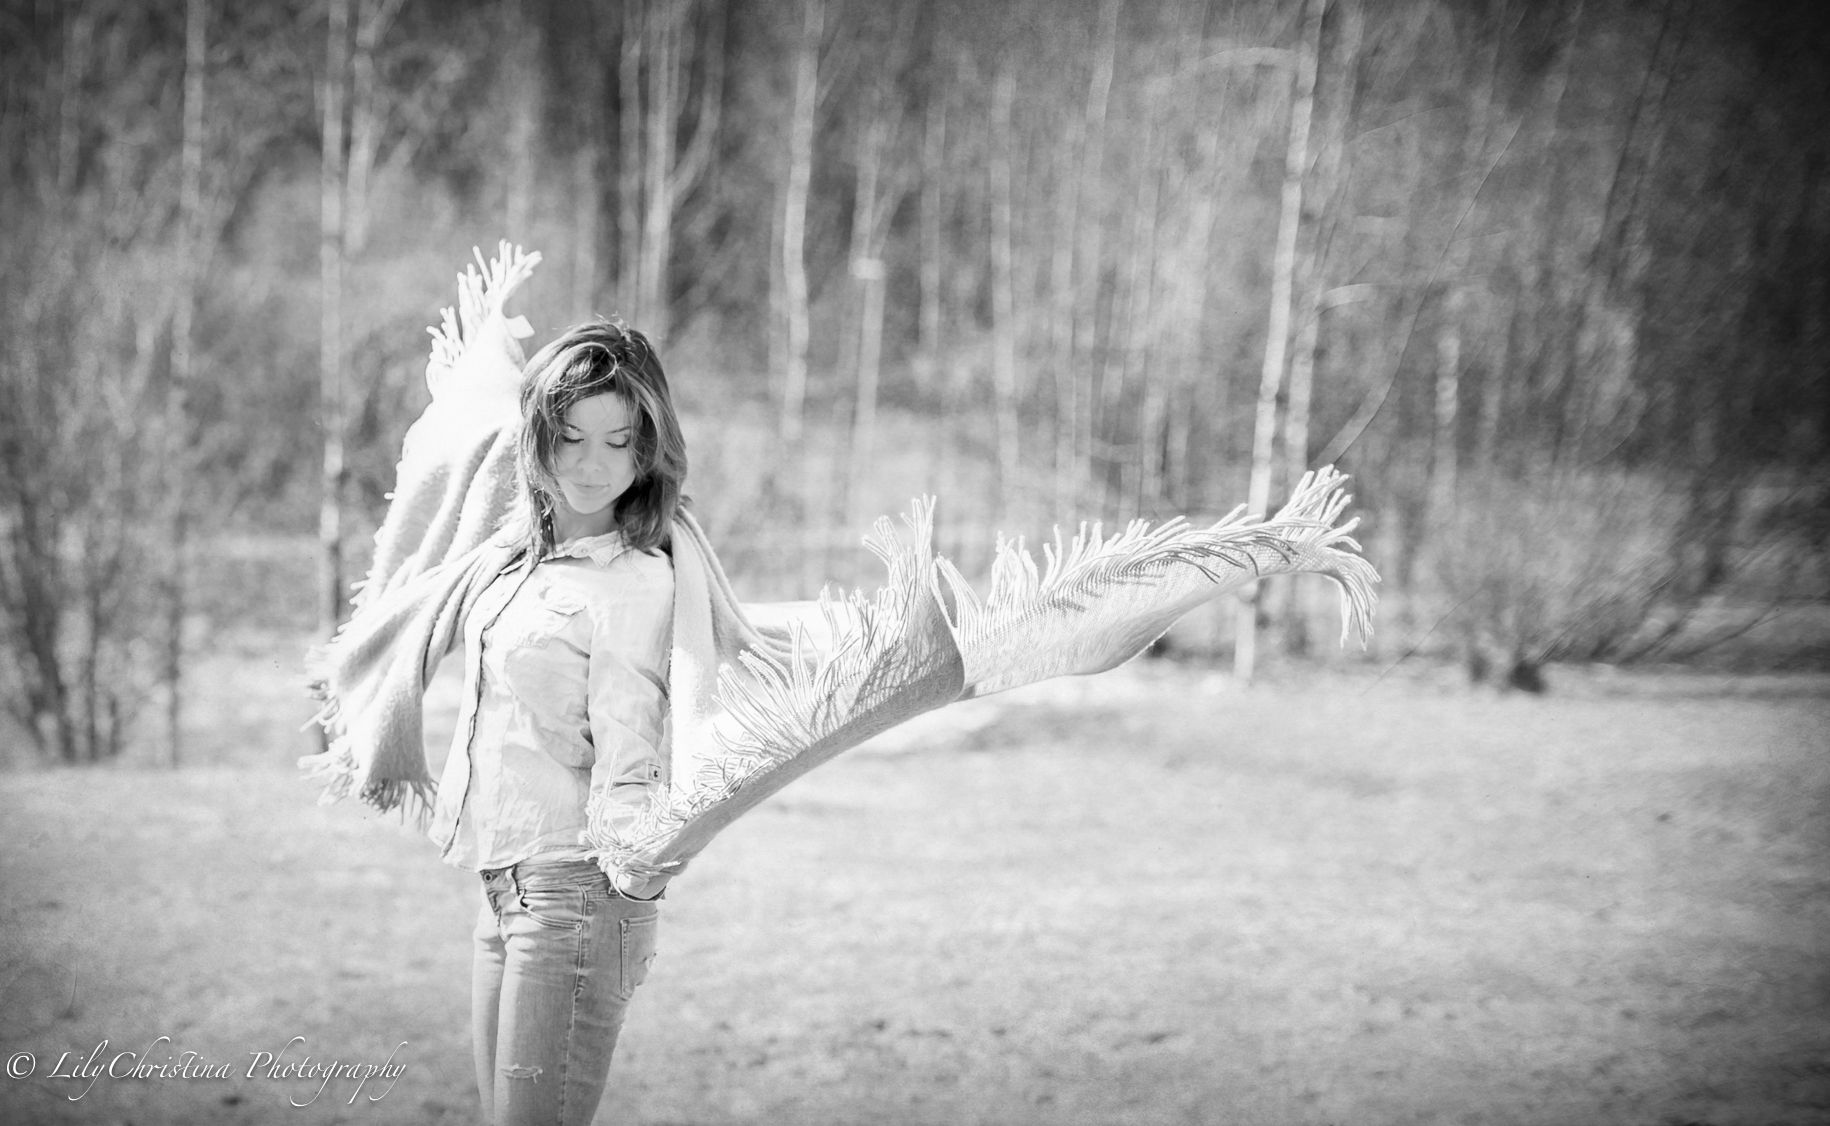 angel, wings, peaceful, muotokuvaus, muotokuvaus porvoo, lilychristina photography, lilychristina, portrait, potretti, mallikuvat, mallikuvaus, mallikuvat porvoo, valmistujaiskuvaus porvoo, black and white picture, model, beautiful, fresh